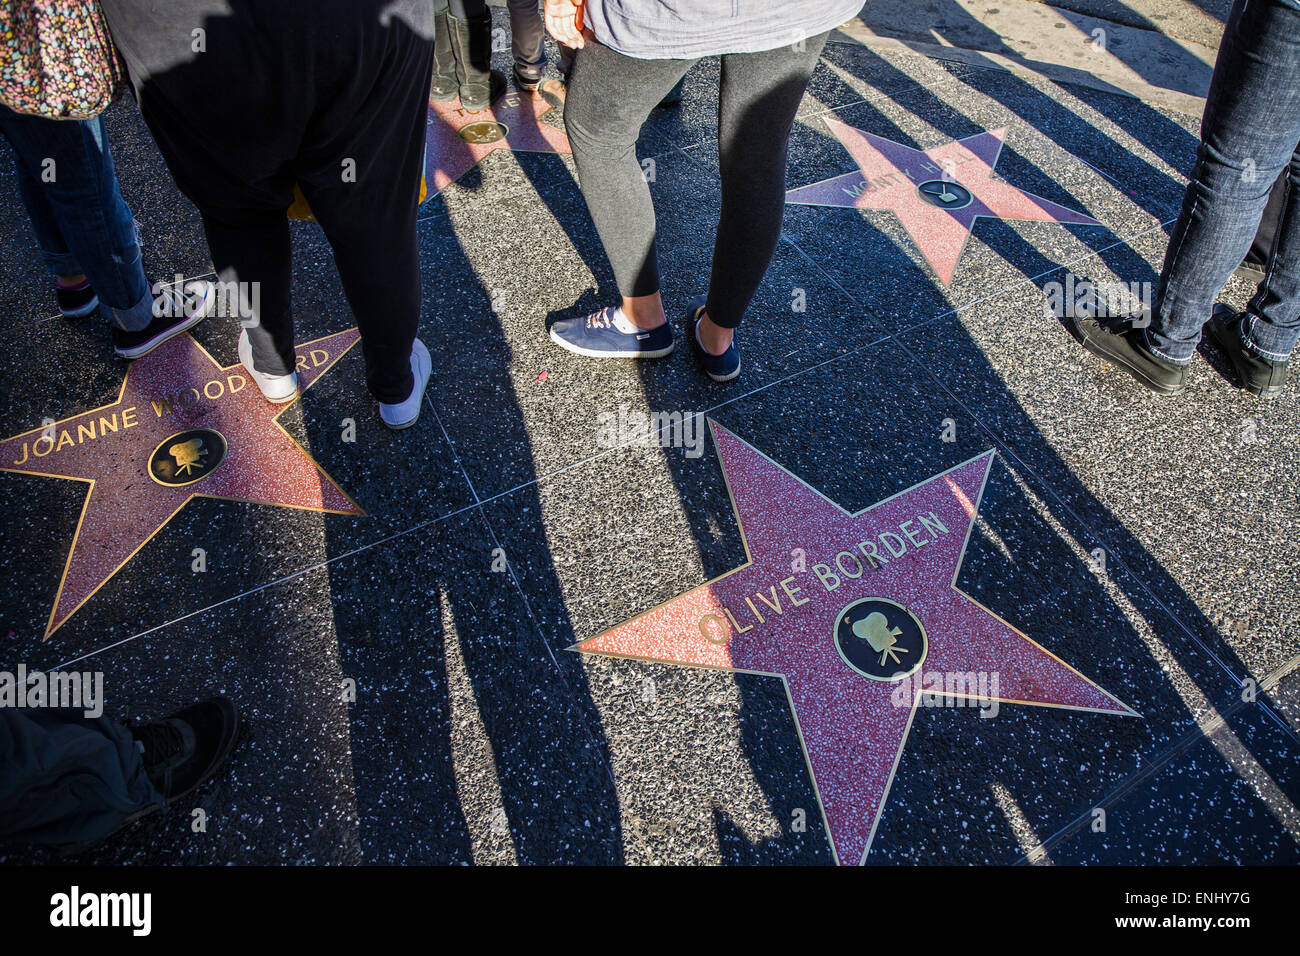 USA, California, Los Angeles, Hollywood Walk of Fame Stockbild